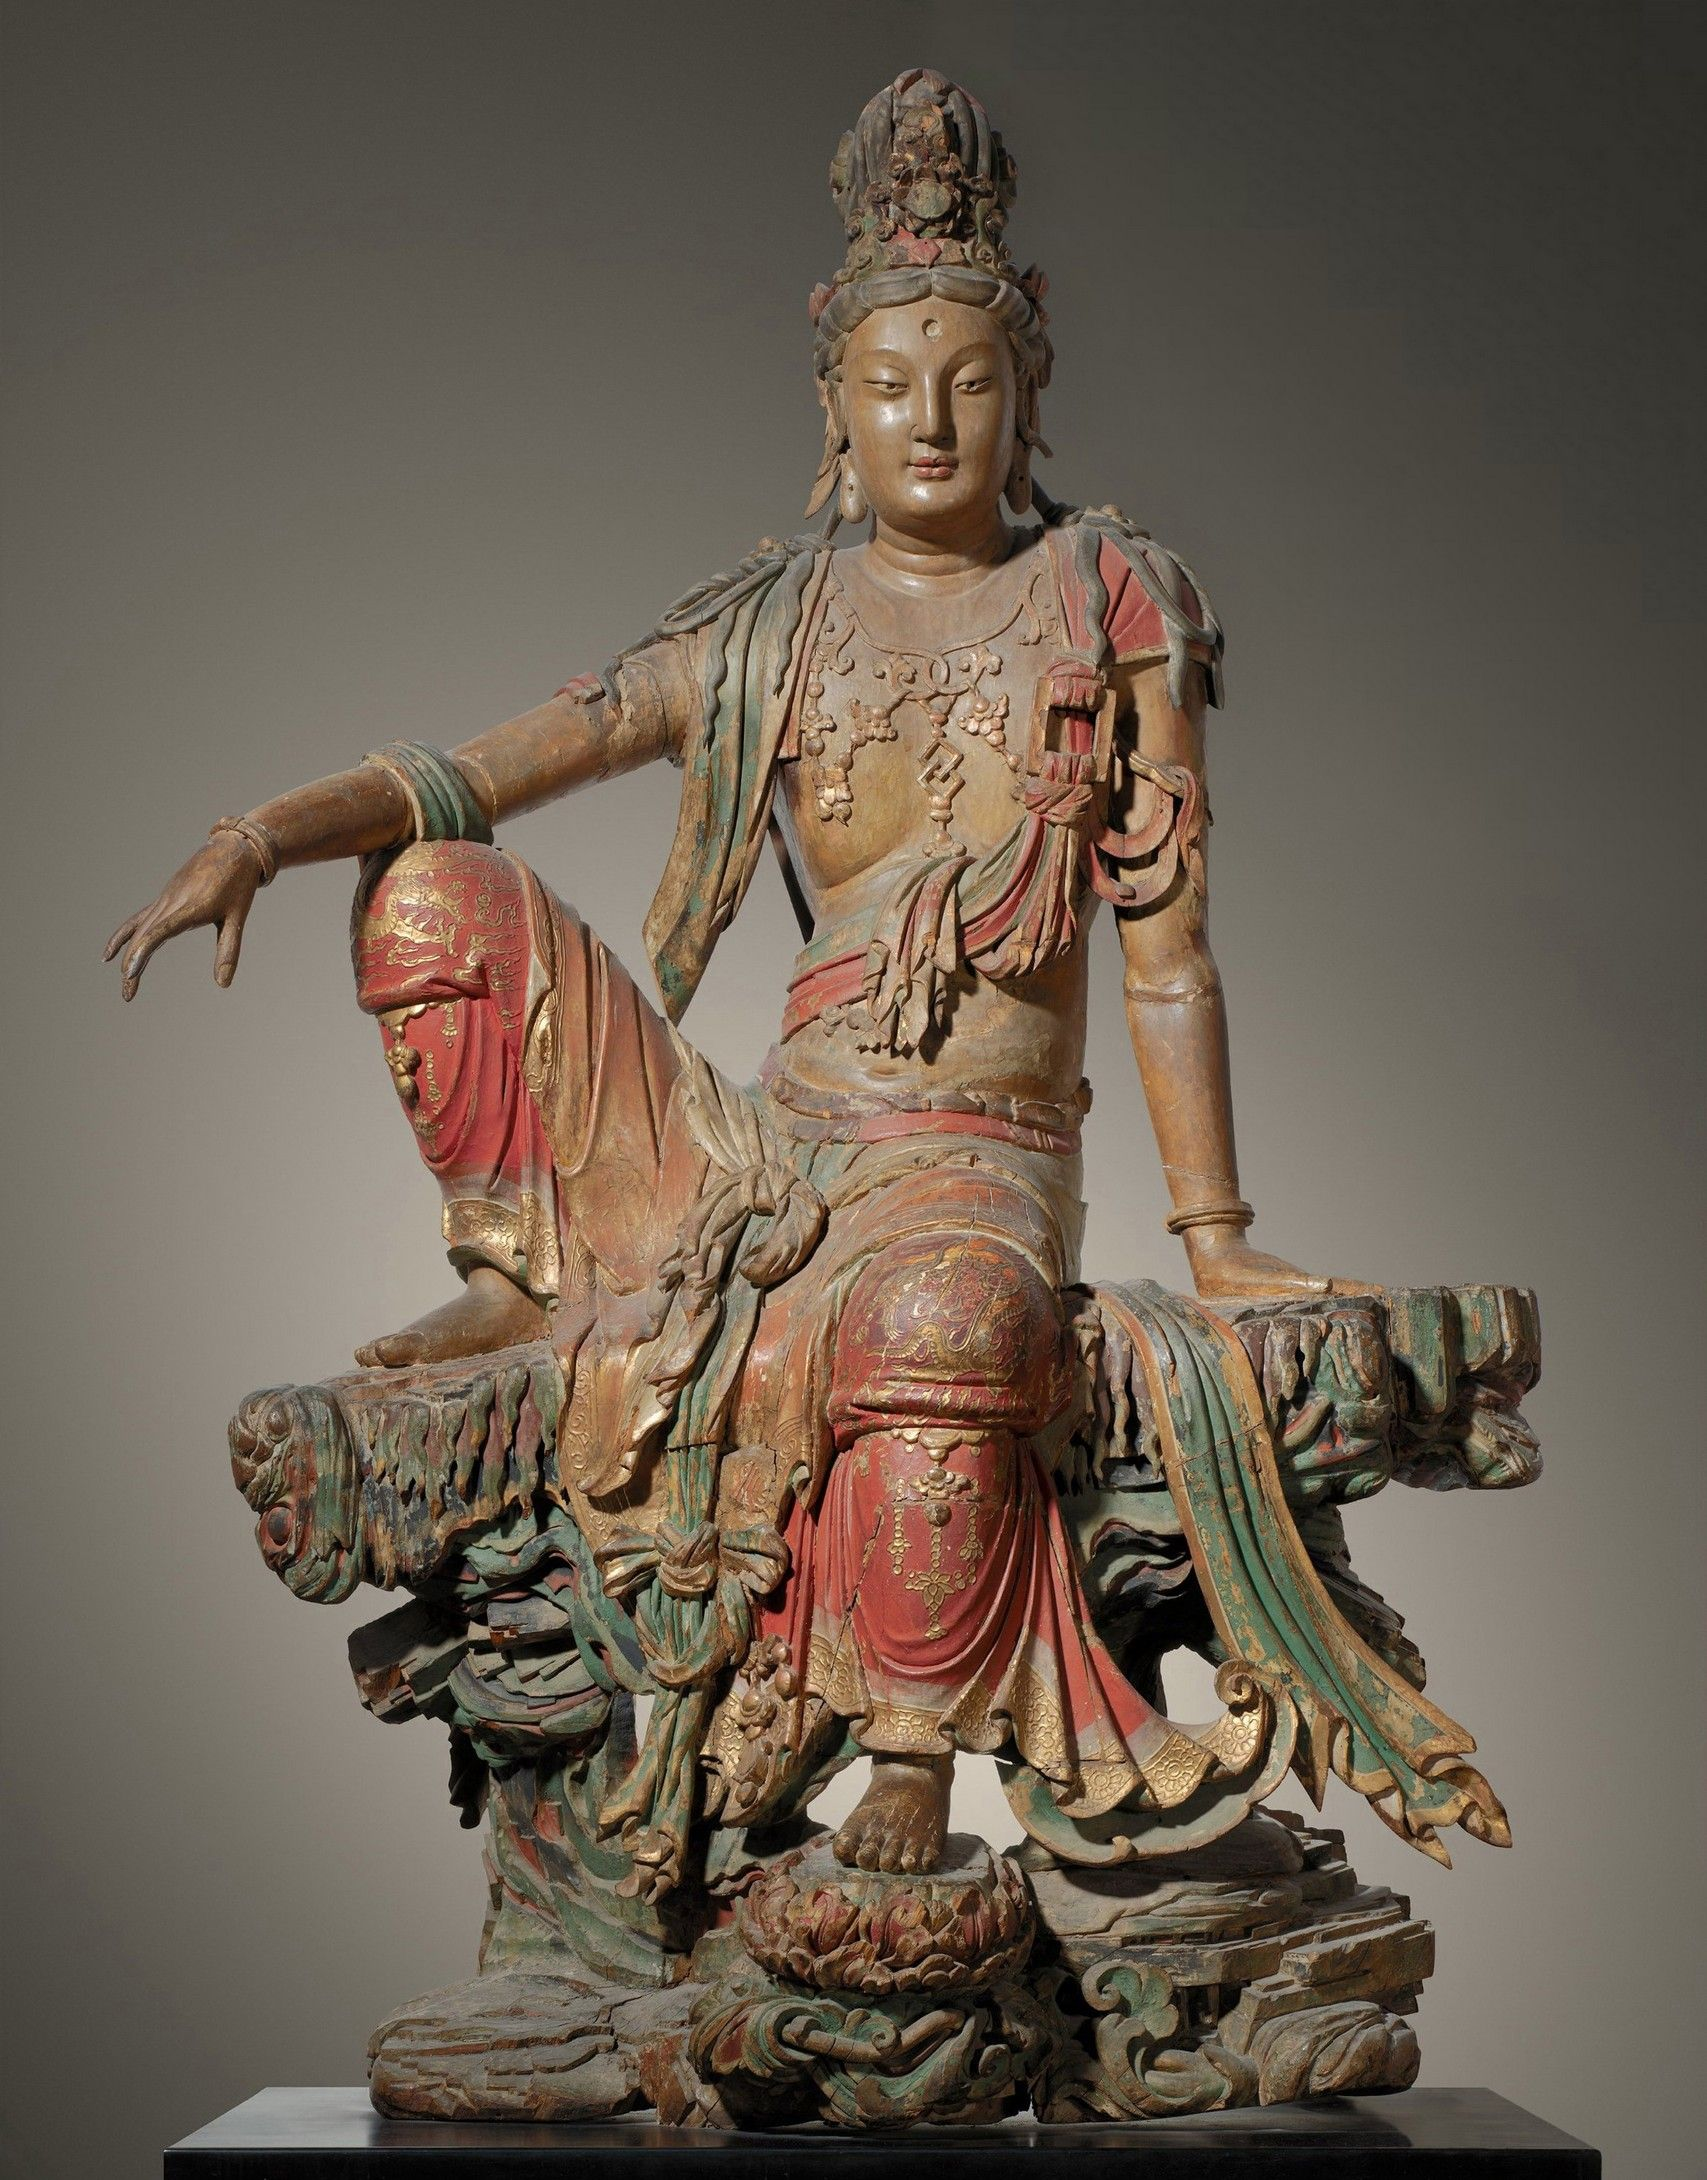 Guanyin of the Southern Sea, Liao (907-1125) or Jin Dynasty (1115-1234) Chinese